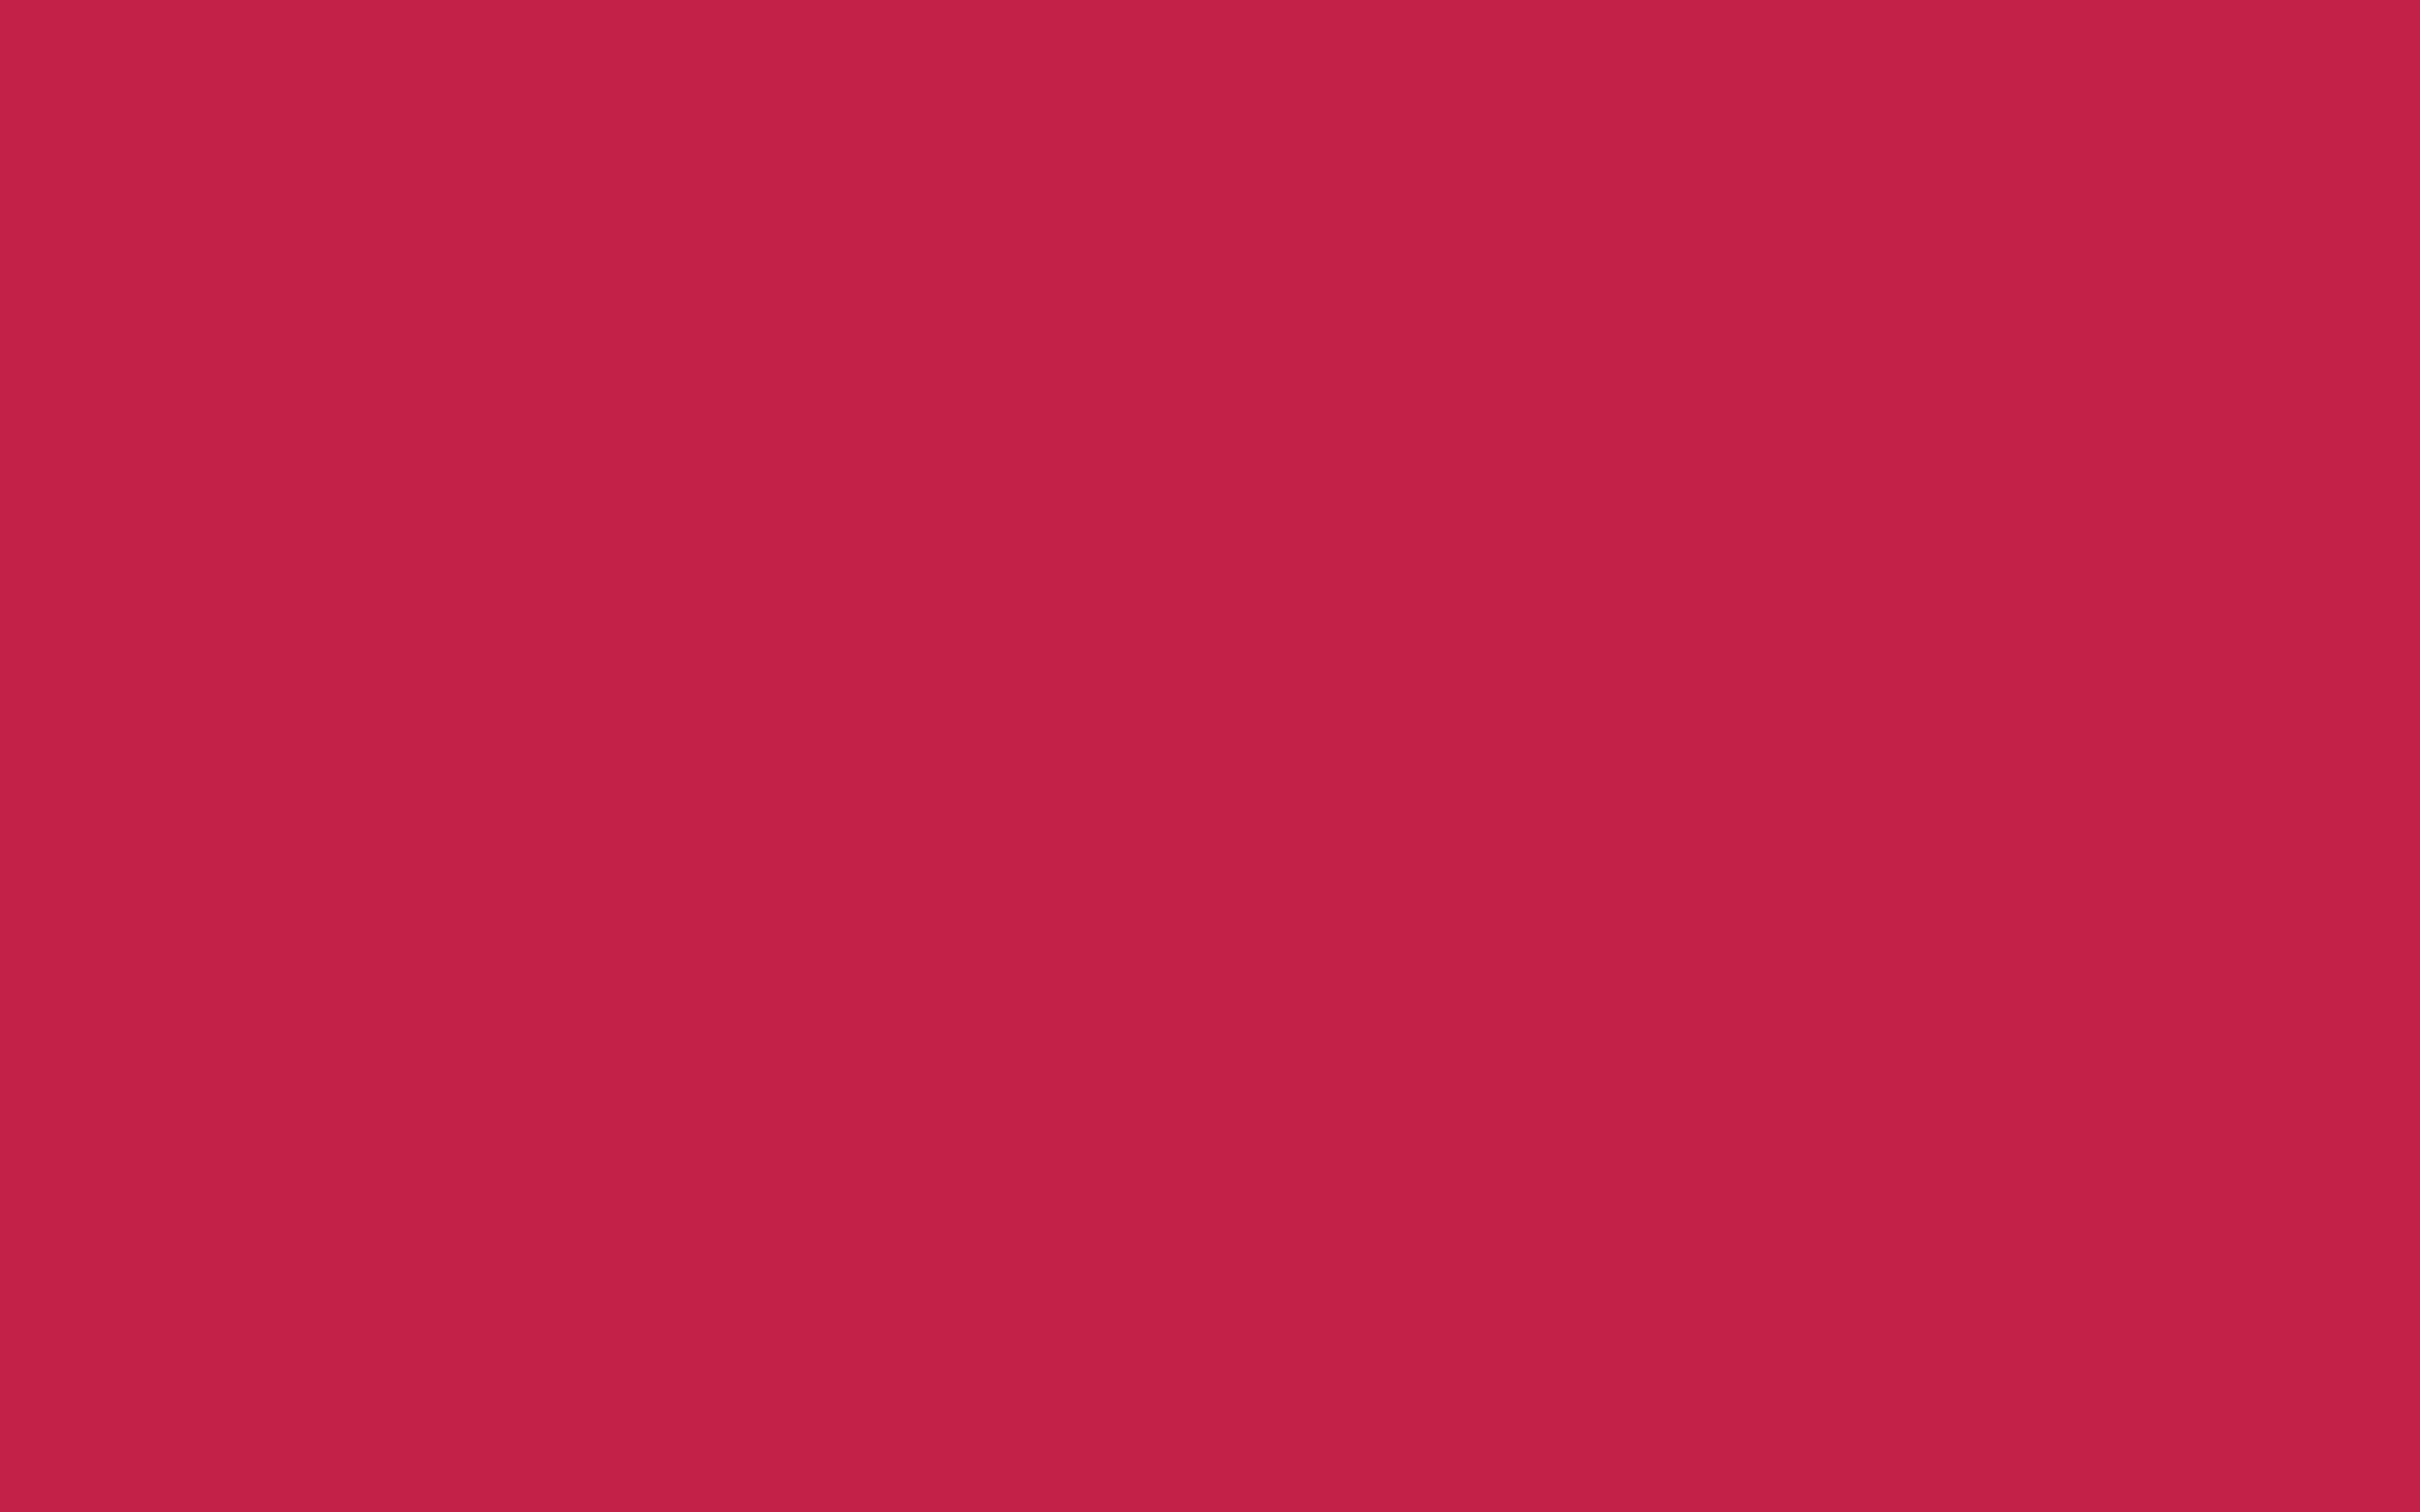 2560x1600 Bright Maroon Solid Color Background